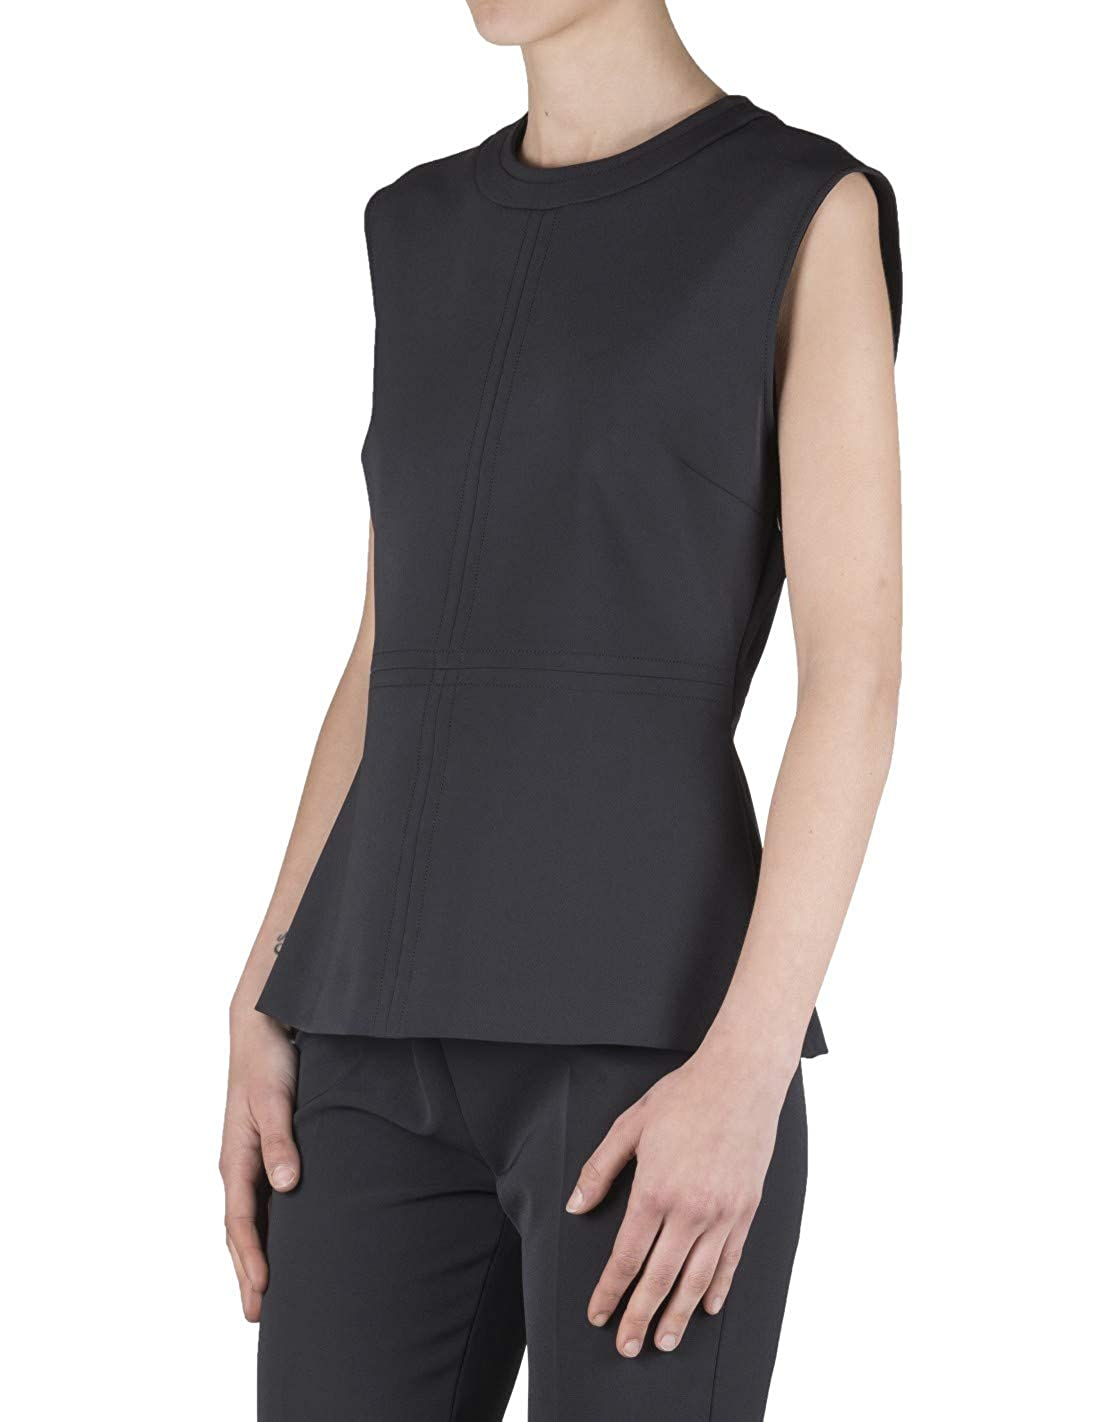 FIT Made in Italy Top Woman Black 402316 012950 TOP Nero Spring//Summer 2019-330972002-